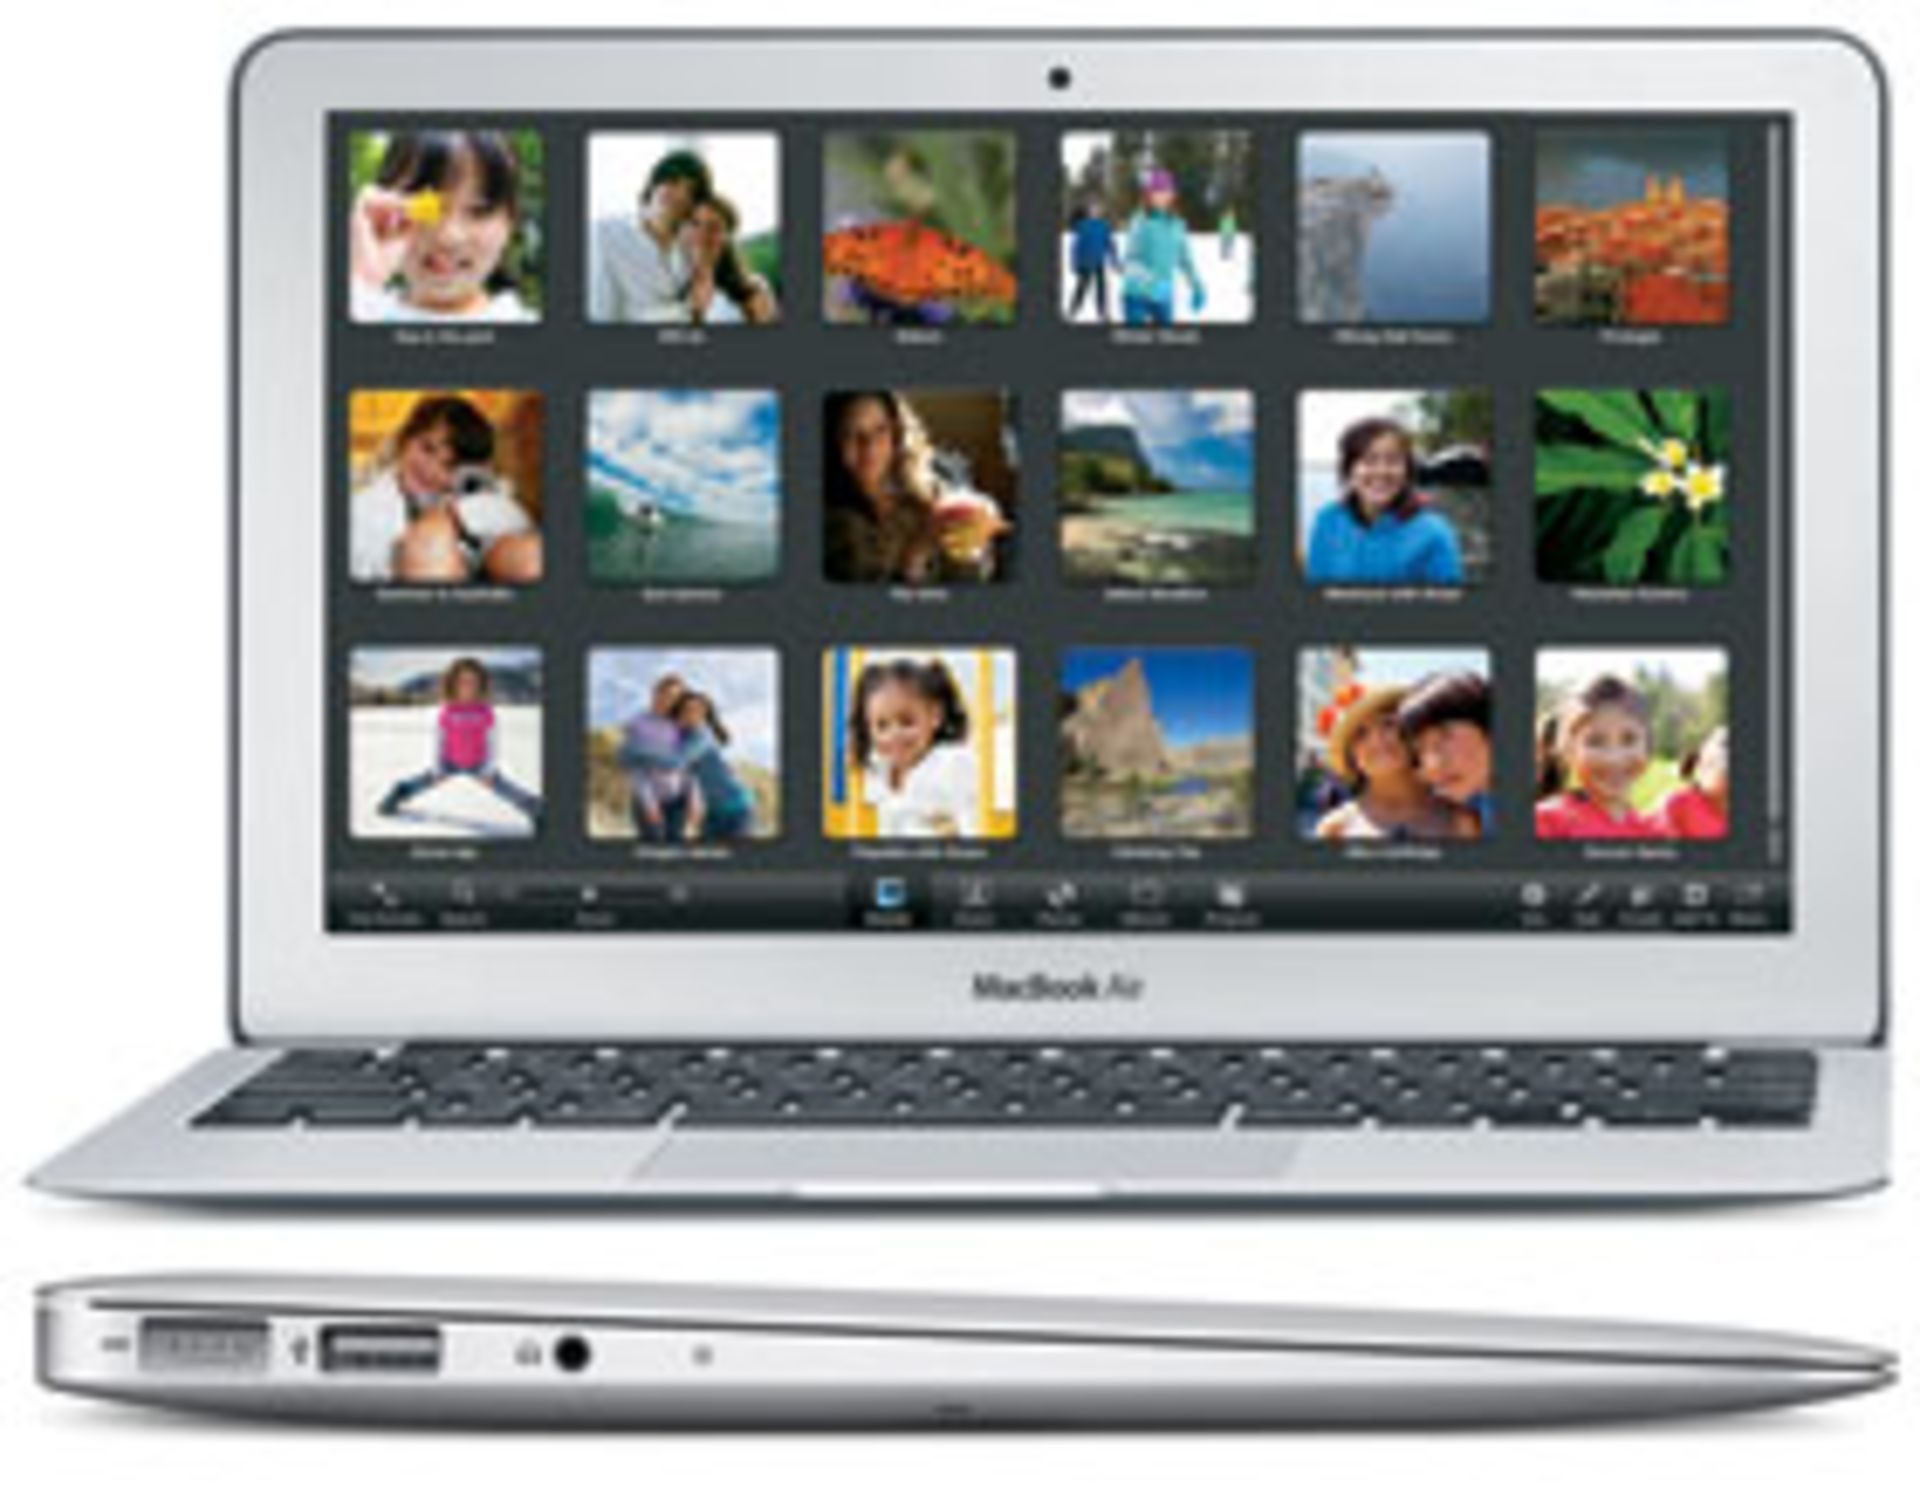 Lot 60022 - V Grade B Macbook Air 11.6 Inch Core 2 Duo - 64GB SSD - A1370 - Available Approx 7 Working Days